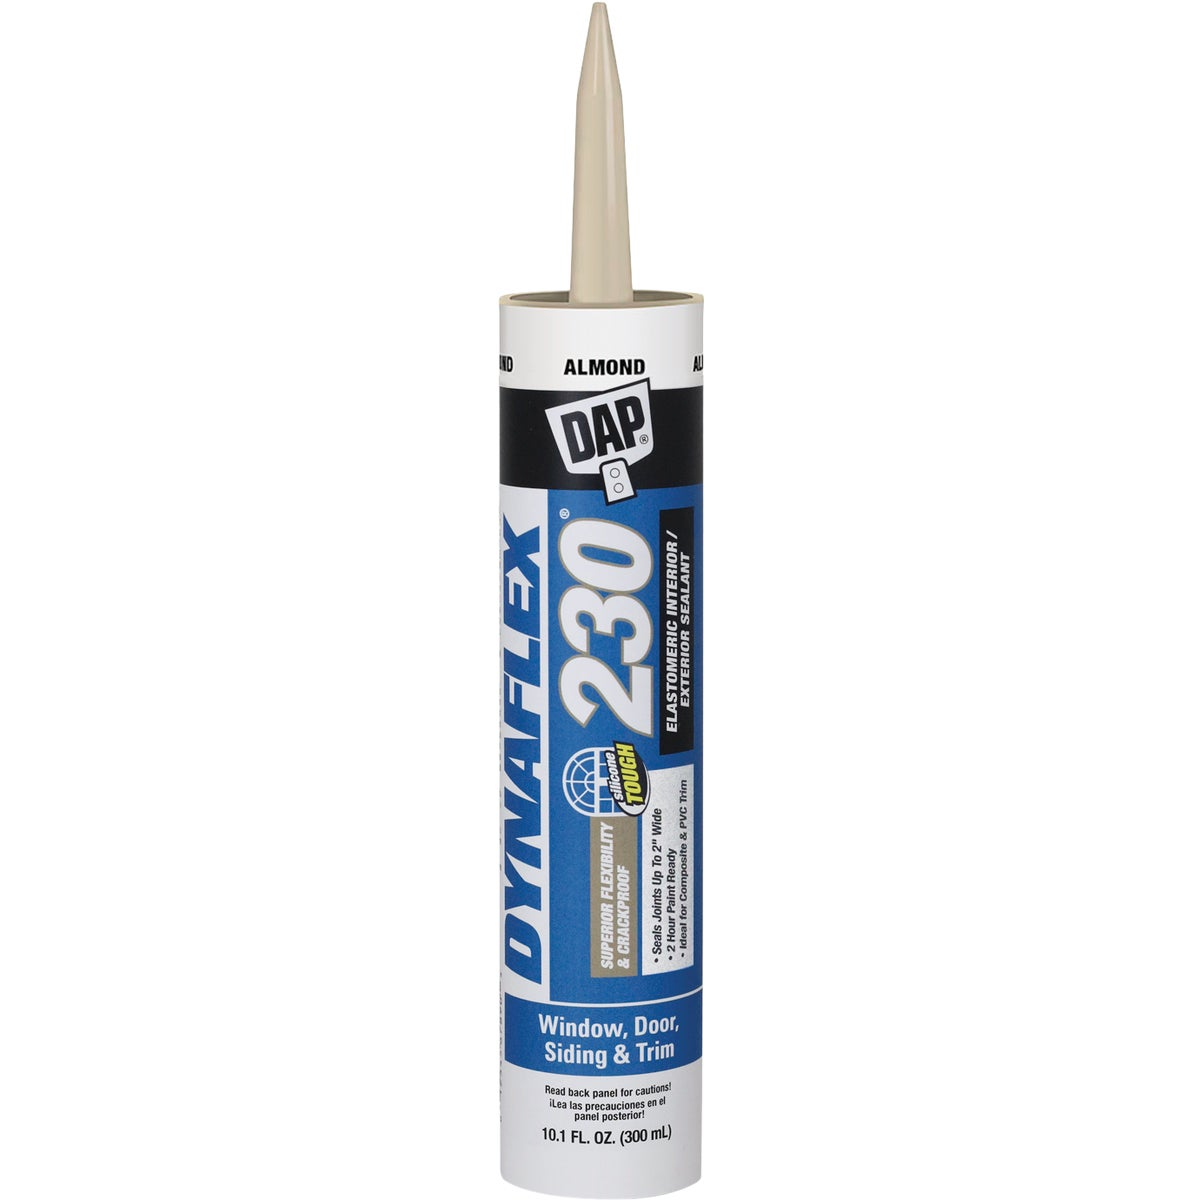 ALMD DYNAFLX LTX SEALANT - 18288 by Dap Inc